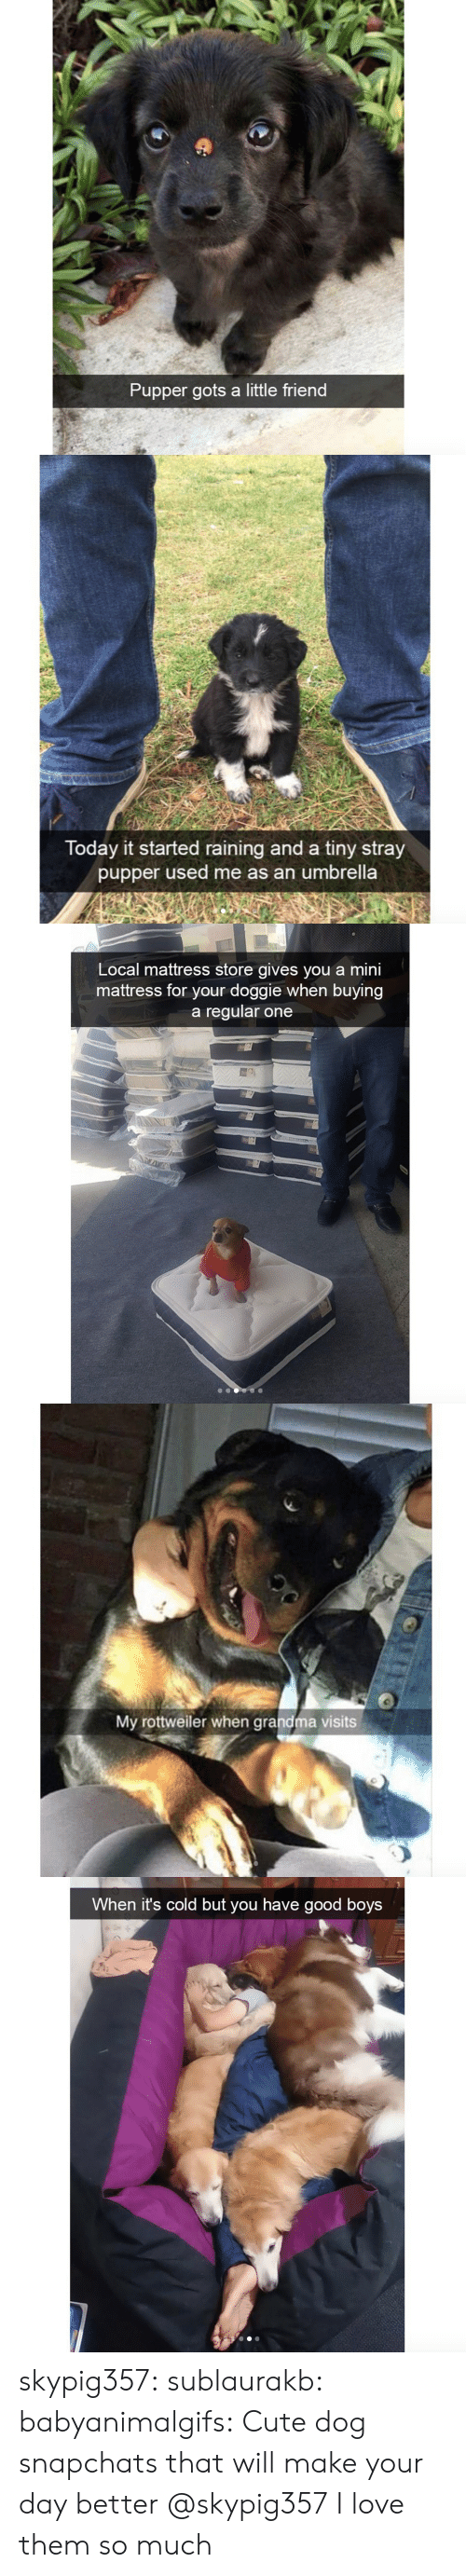 gots: Pupper gots a little friend   Today it started raining and a tiny stray  pupper used me as an umbrella   Local mattress store gives you a mini  mattress for your doggie when buying  a regular one   My rottweiler when grandma visits   When it's cold but you have good boys skypig357: sublaurakb:   babyanimalgifs:  Cute dog snapchats that will make your day better  @skypig357    I love them so much